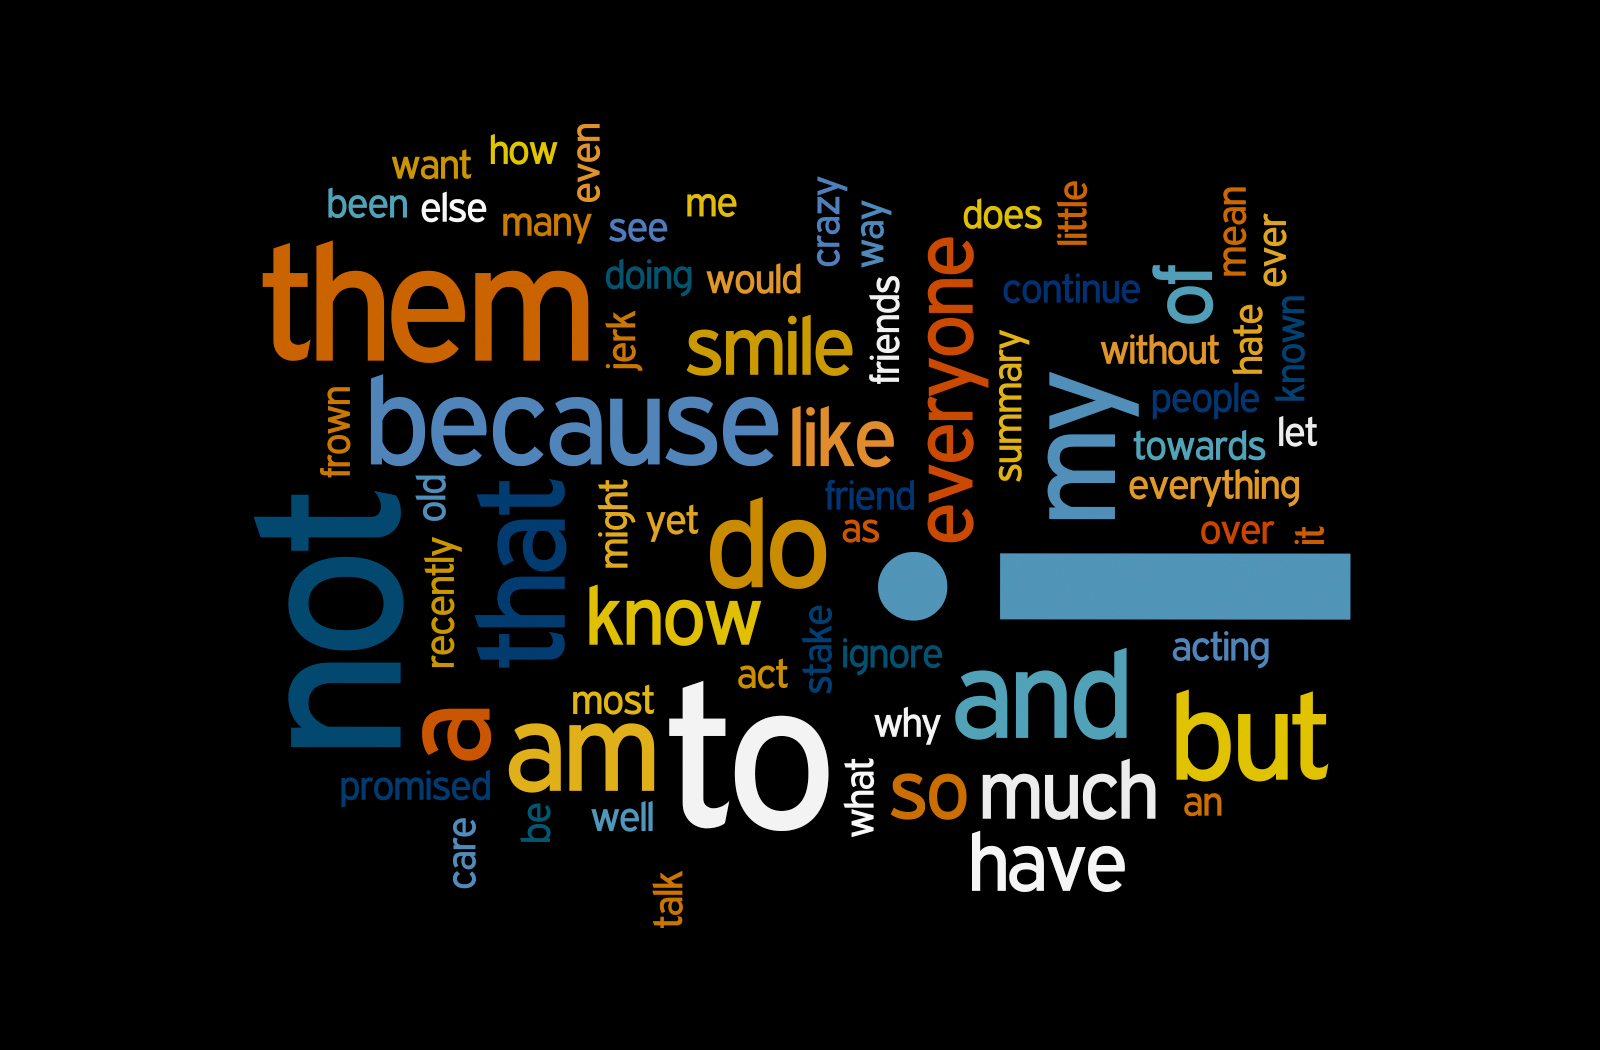 cool word wallpapers - photo #18